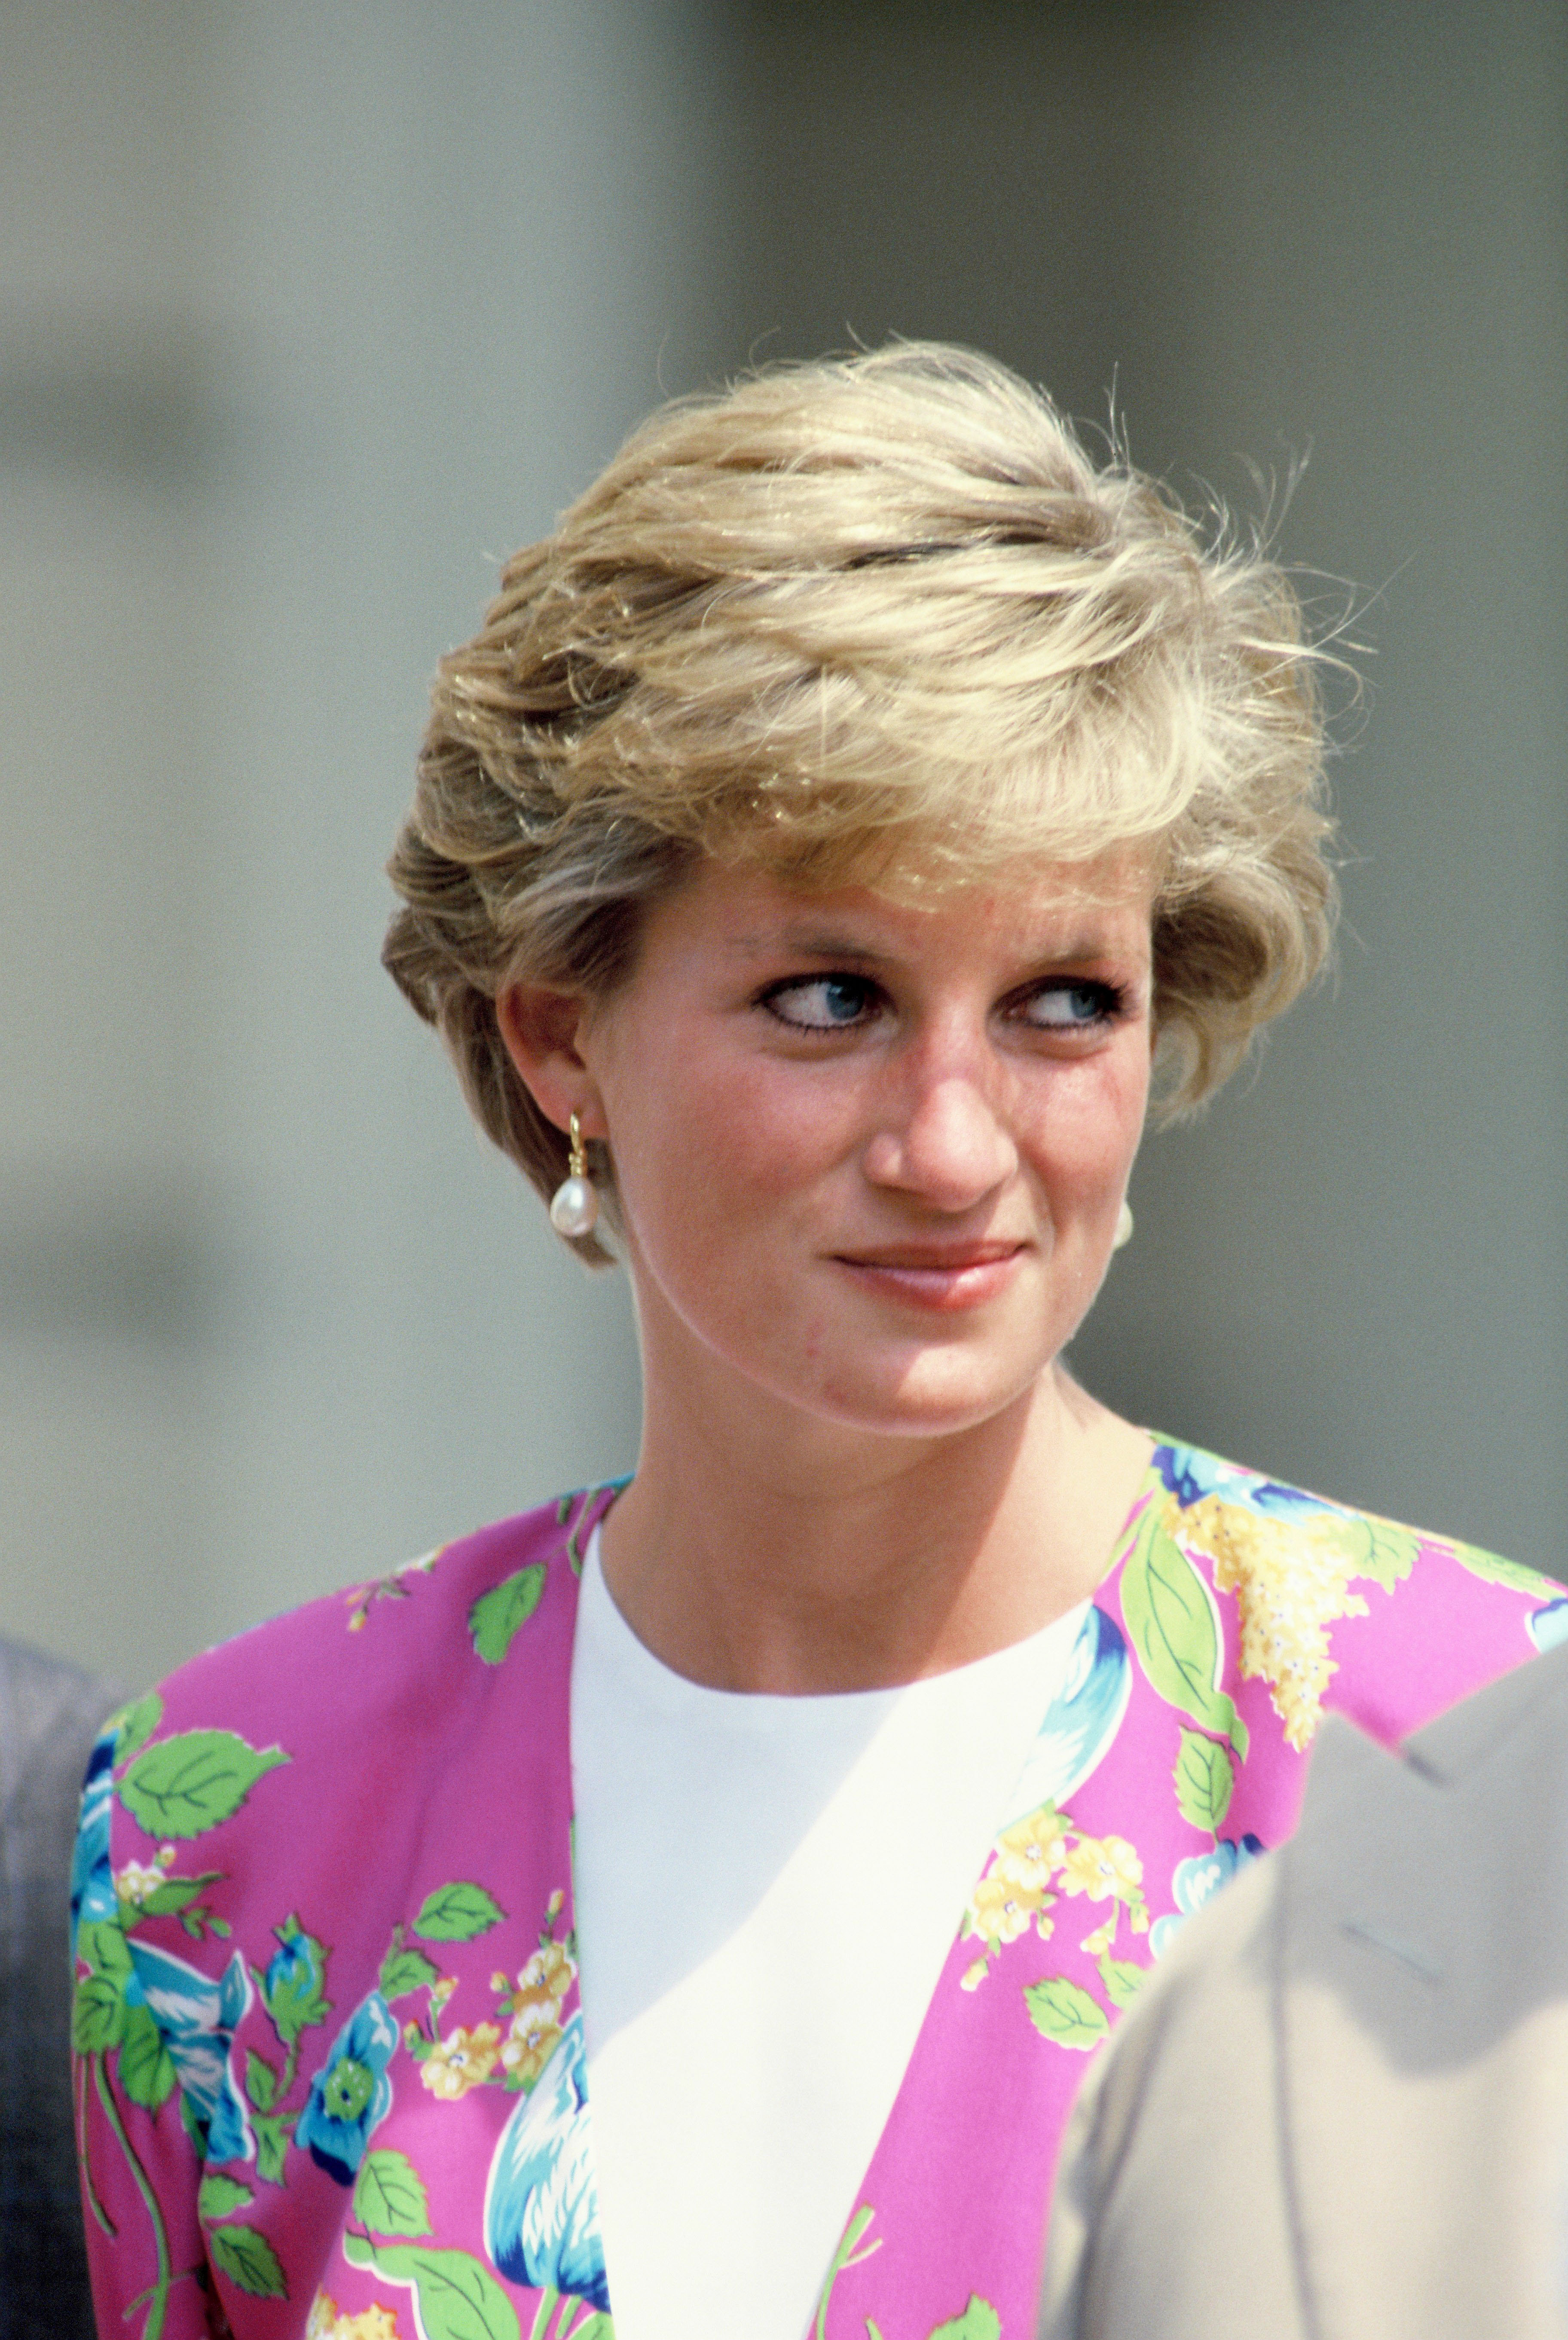 princess diana haircut photos diana hairstyles princess fade haircut 6139